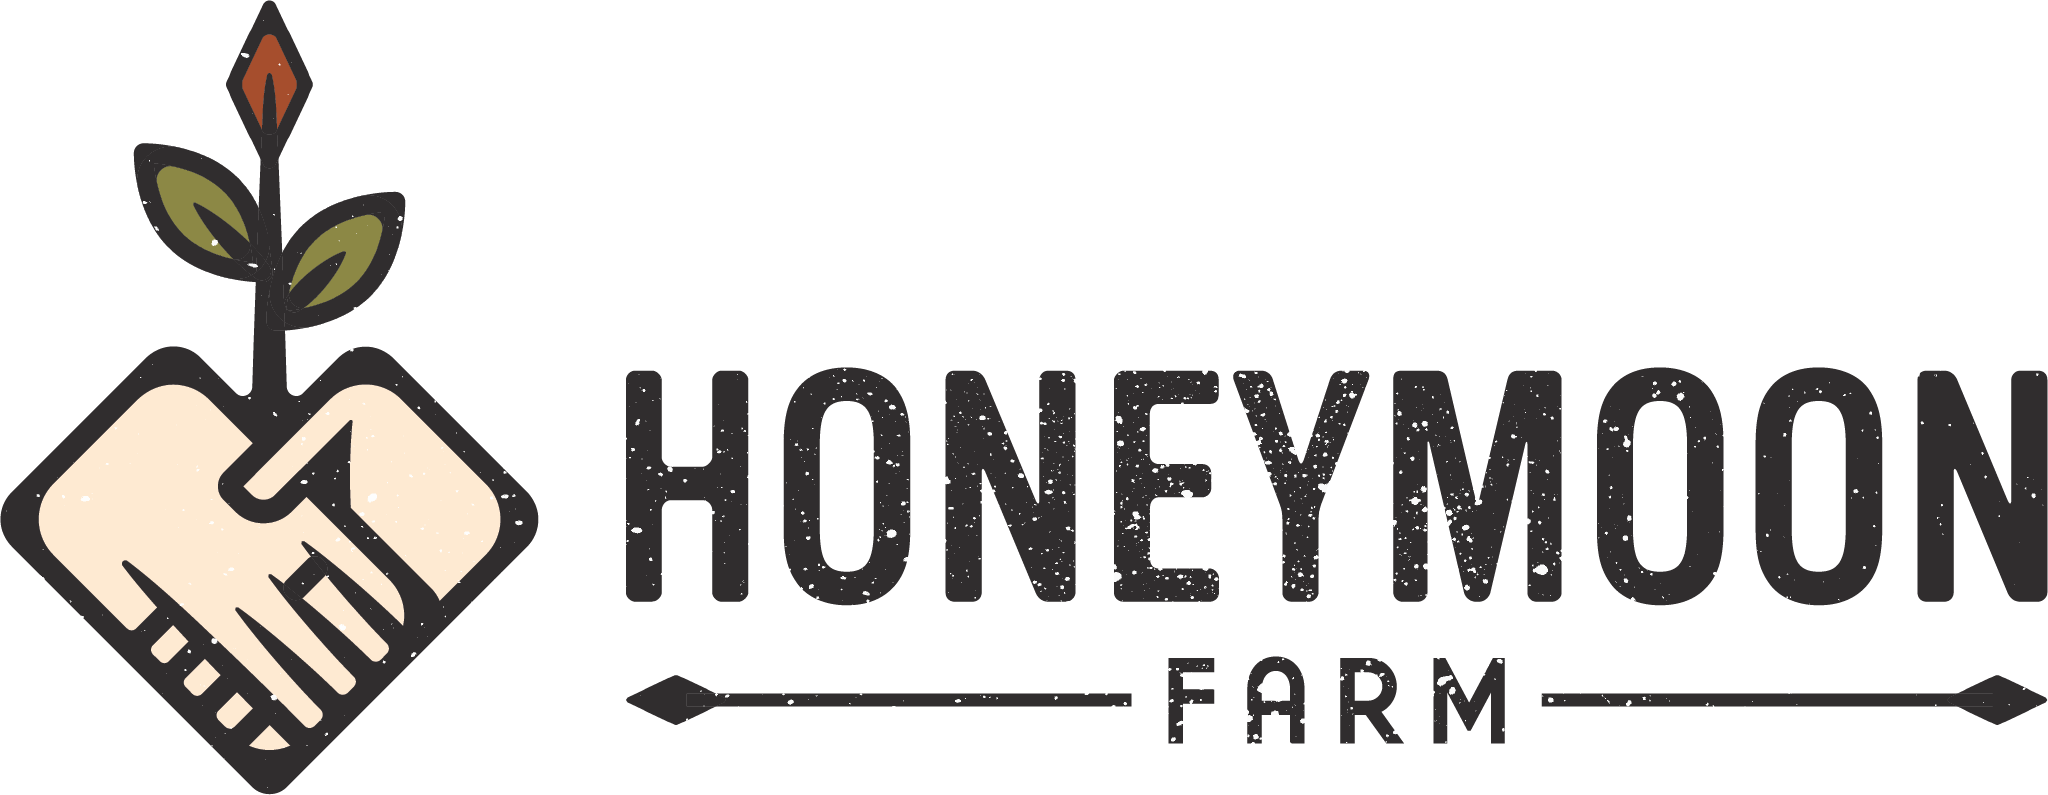 Honeymoon Farm Logo